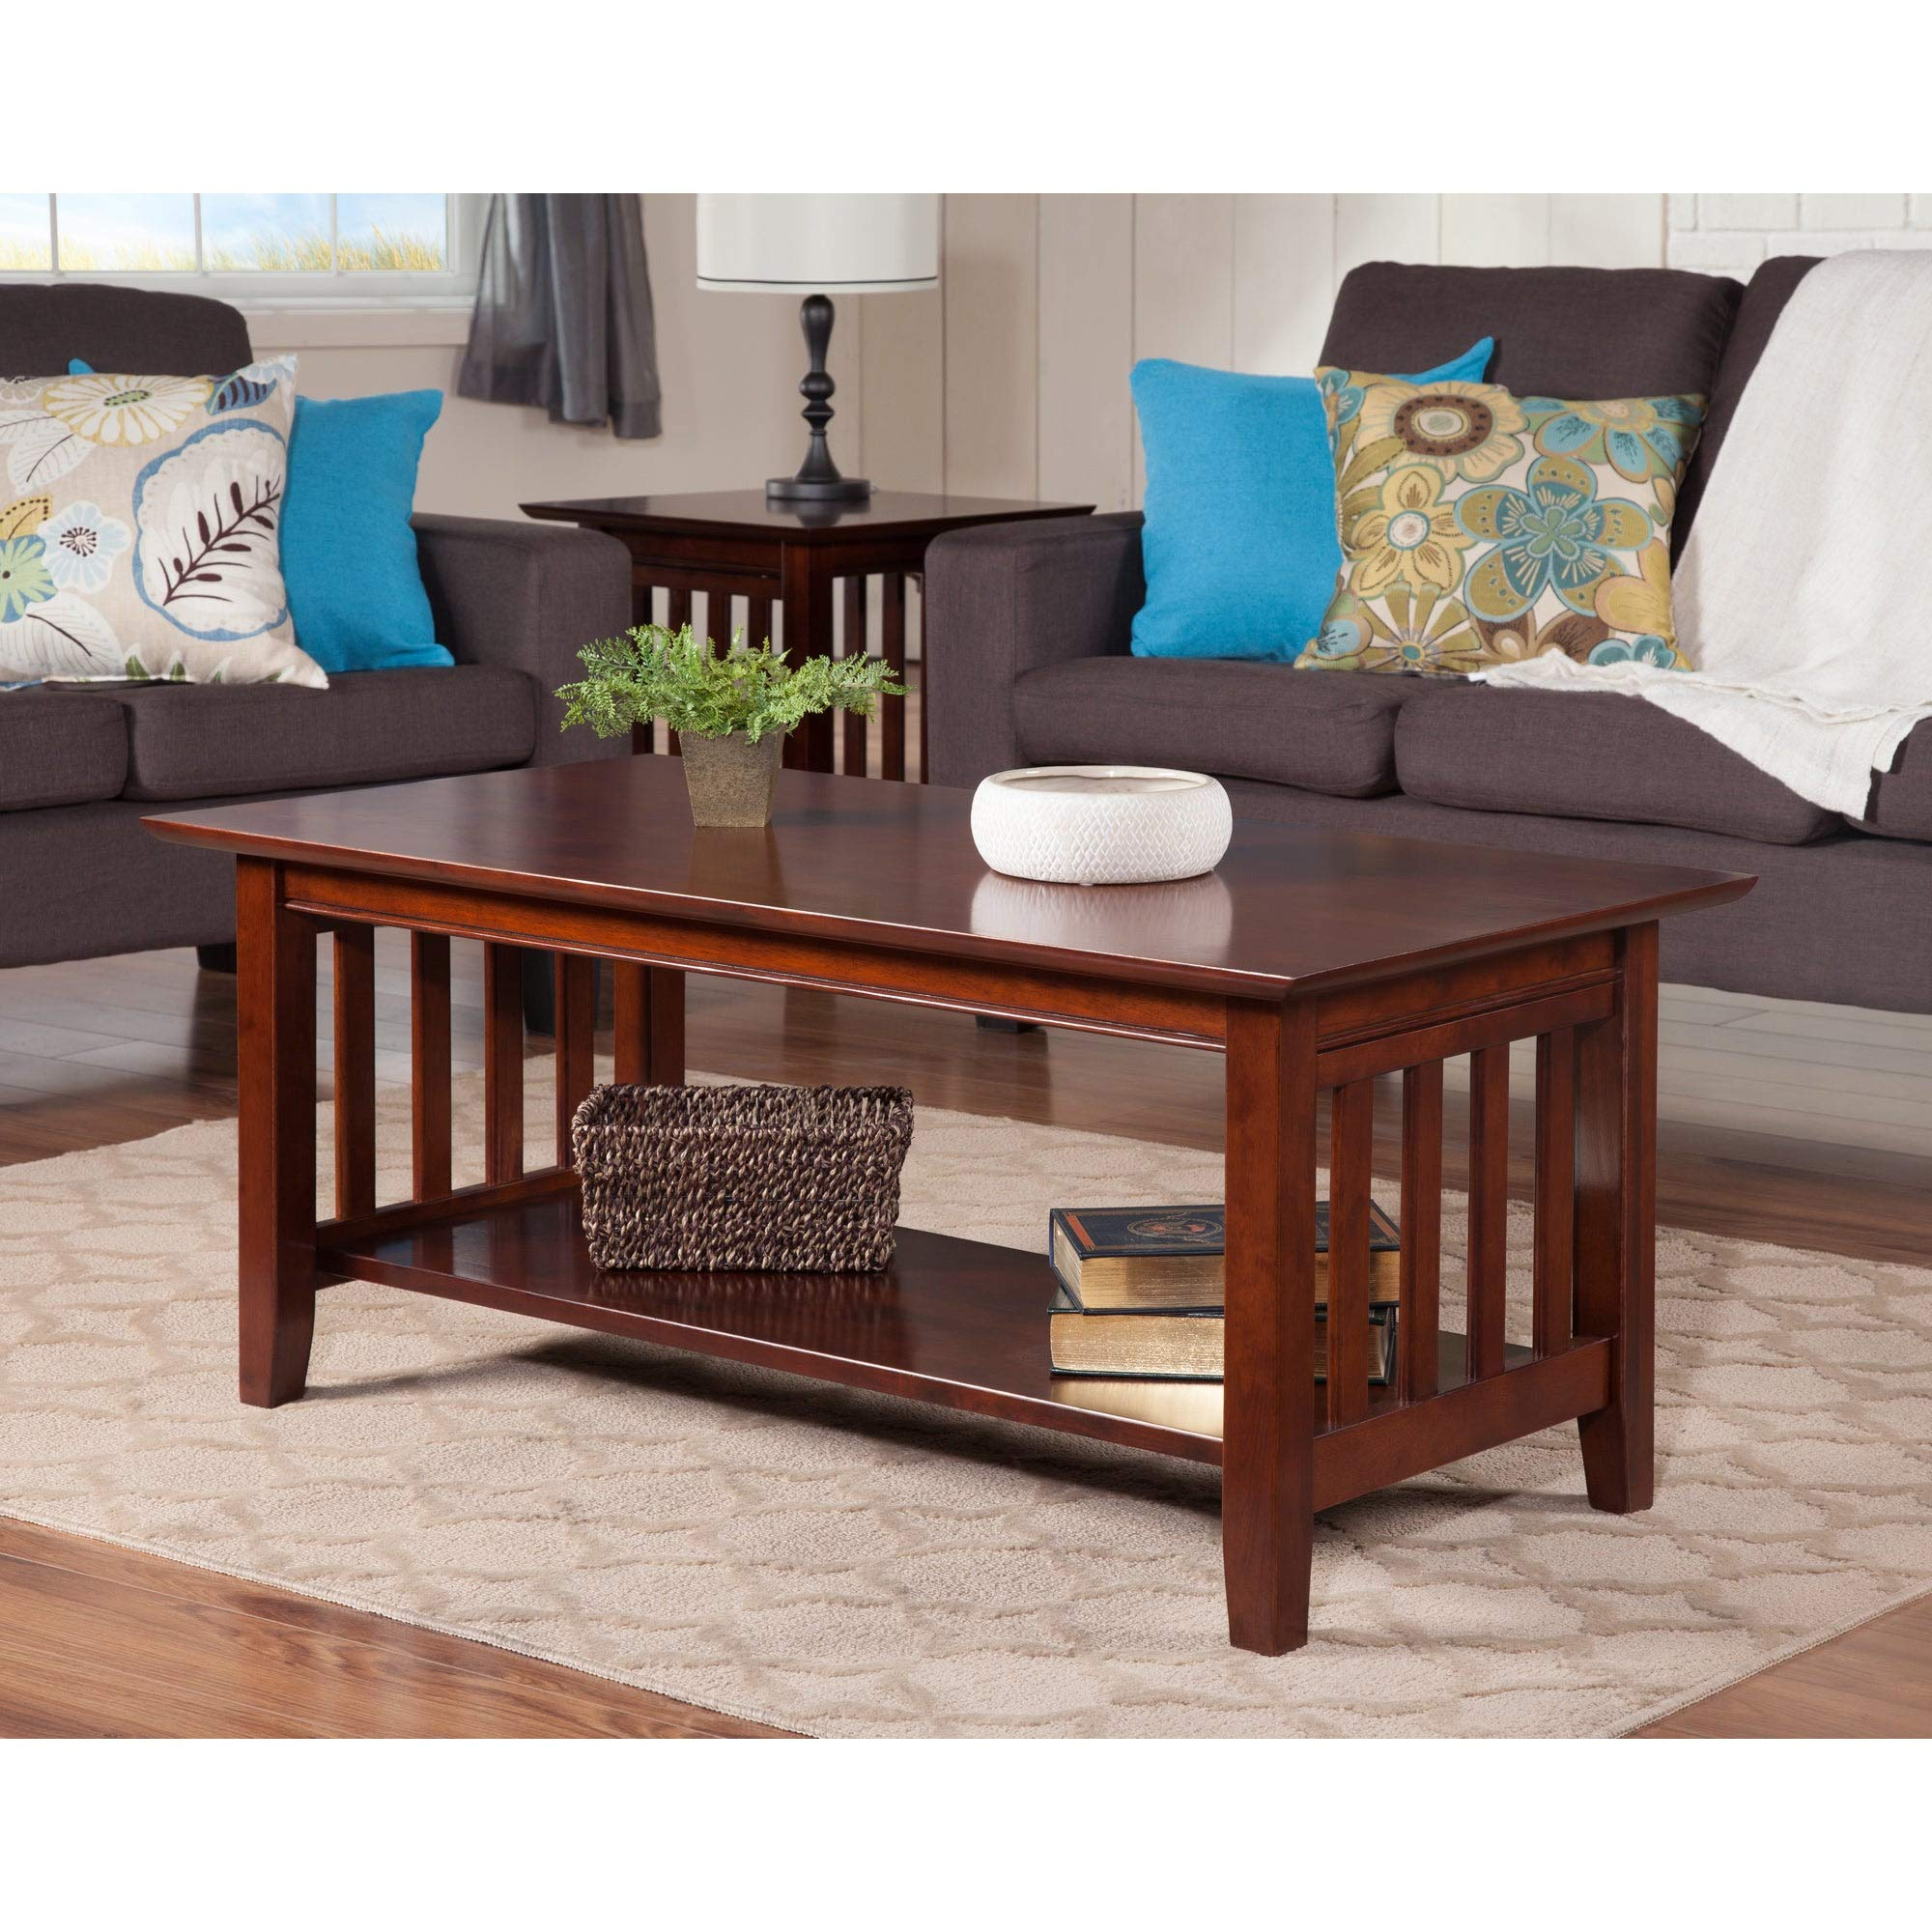 Atlantic Furniture Mission Coffee Table Walnut by Atlantic Furniture